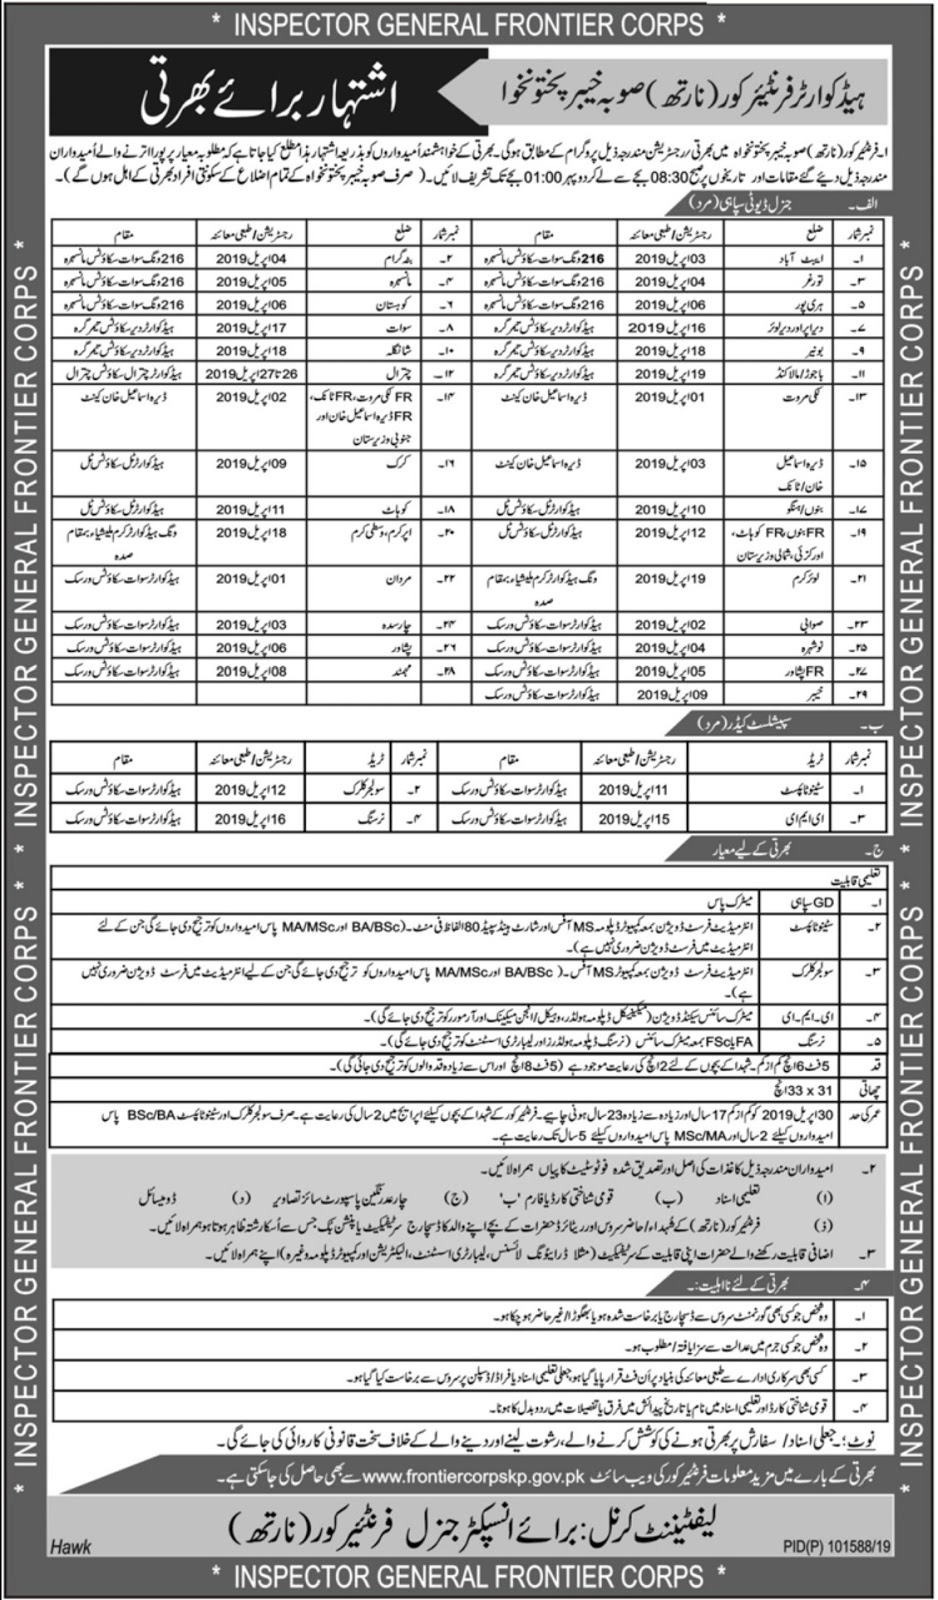 Frontier Corps FC-KPK : Pak Army March Jobs 2019 : Latest FC Jobs For Matric & Inter Pass